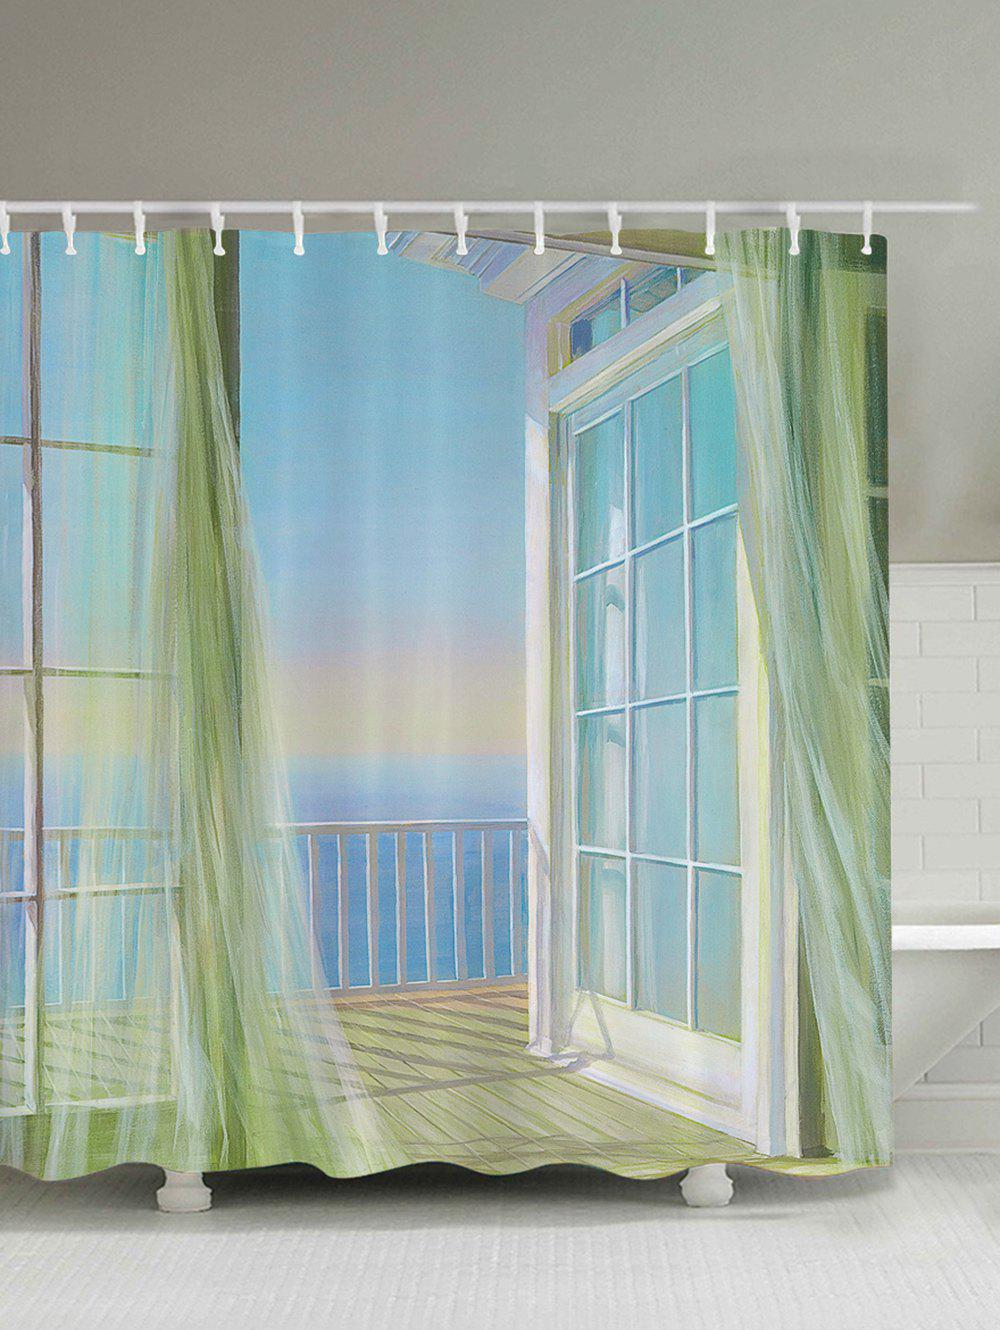 Bath decor balcony seascape print shower curtain white 2 - Bathroom shower curtains and accessories ...